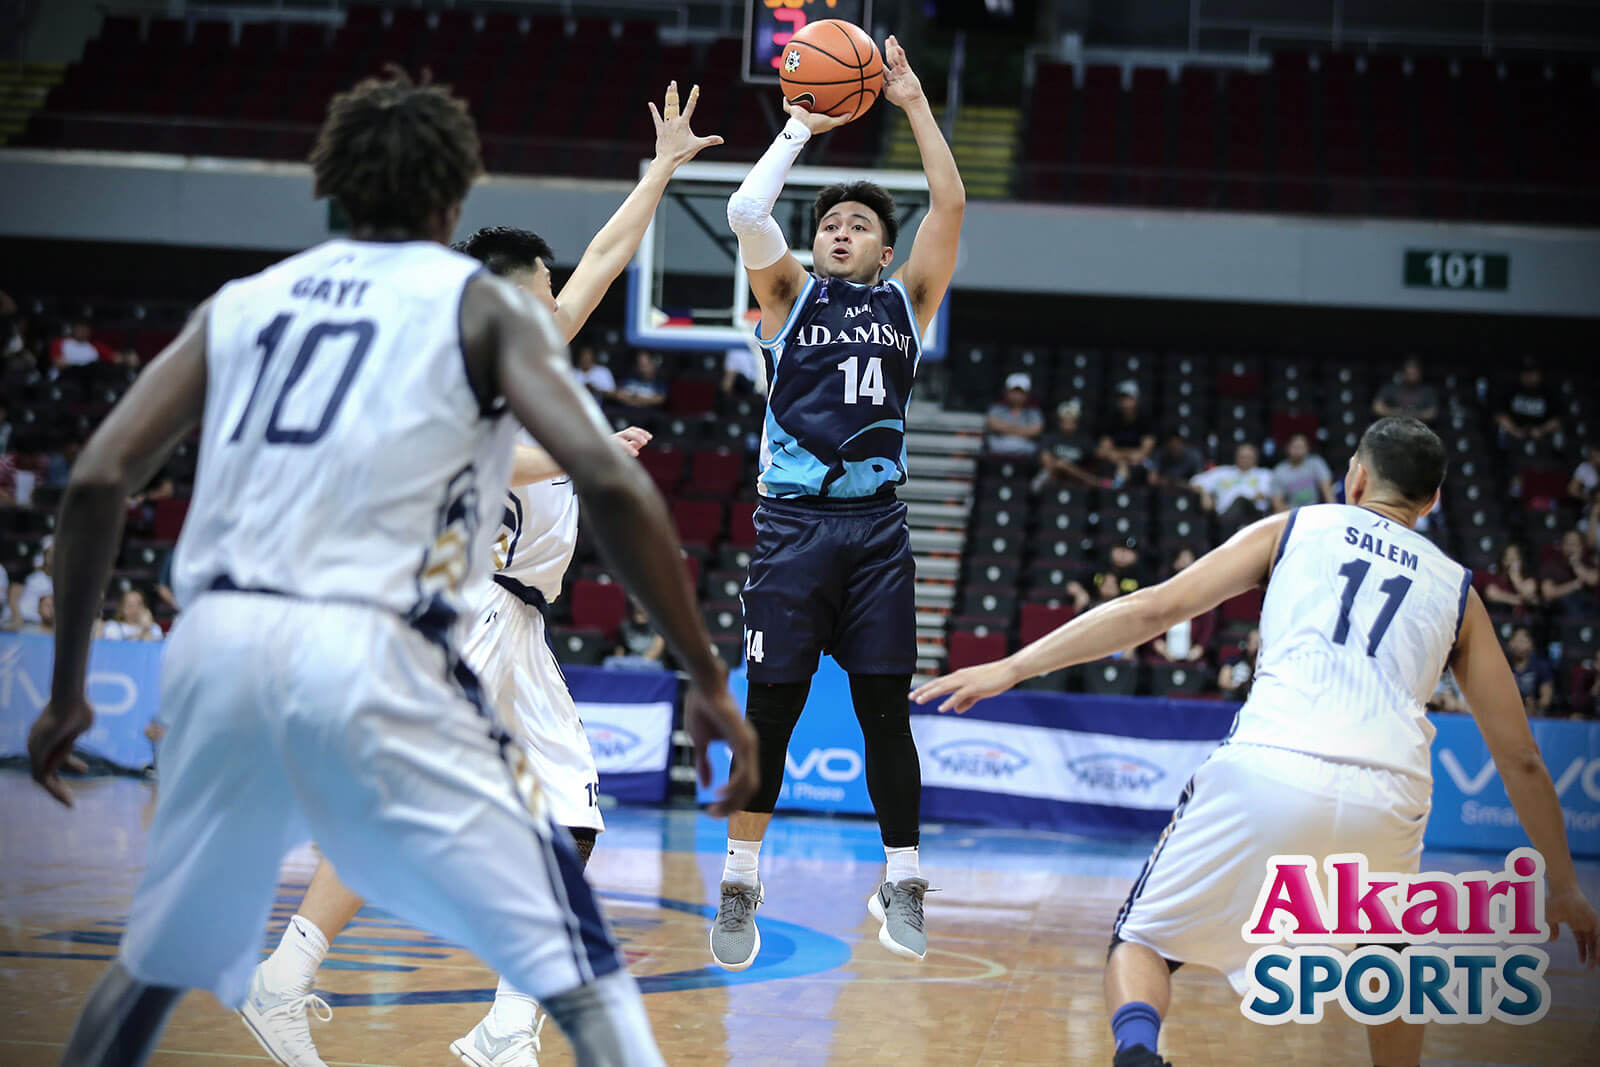 10-adamson-vs-nu-uaap-basketball-akari-sports